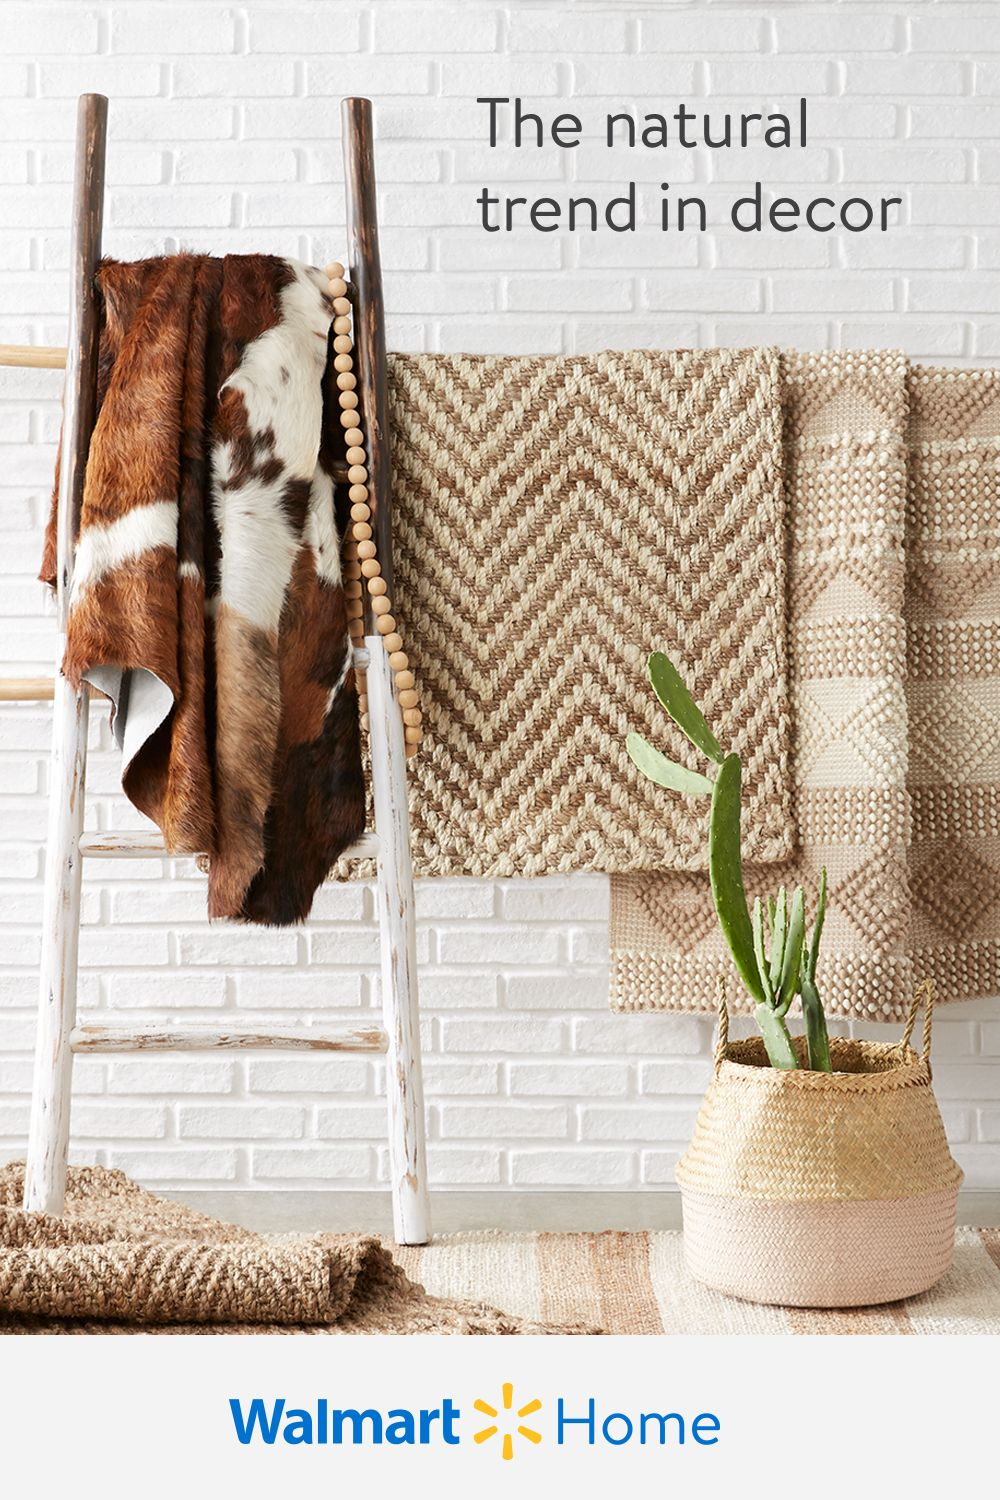 Enliven every room with decor in natural textures, tones, & materials.  Shop Walmart for affordable planters, rugs, textiles, & more for spaces with down-to-earth style.